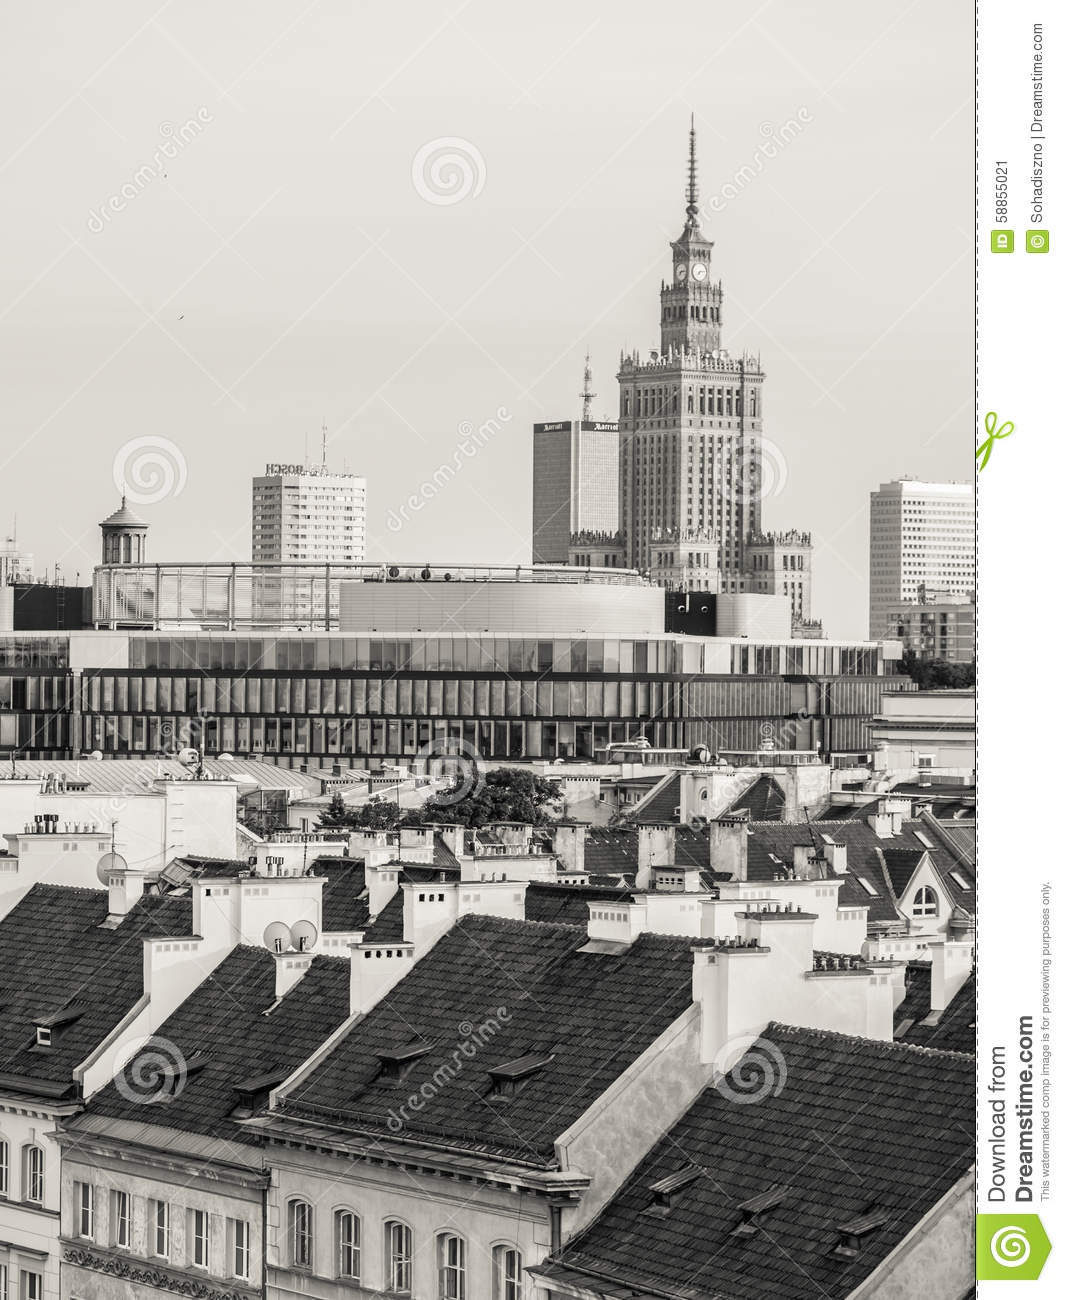 Terraces At Town Center: Warsaw Editorial Photo. Image Of City, Capital, Poland